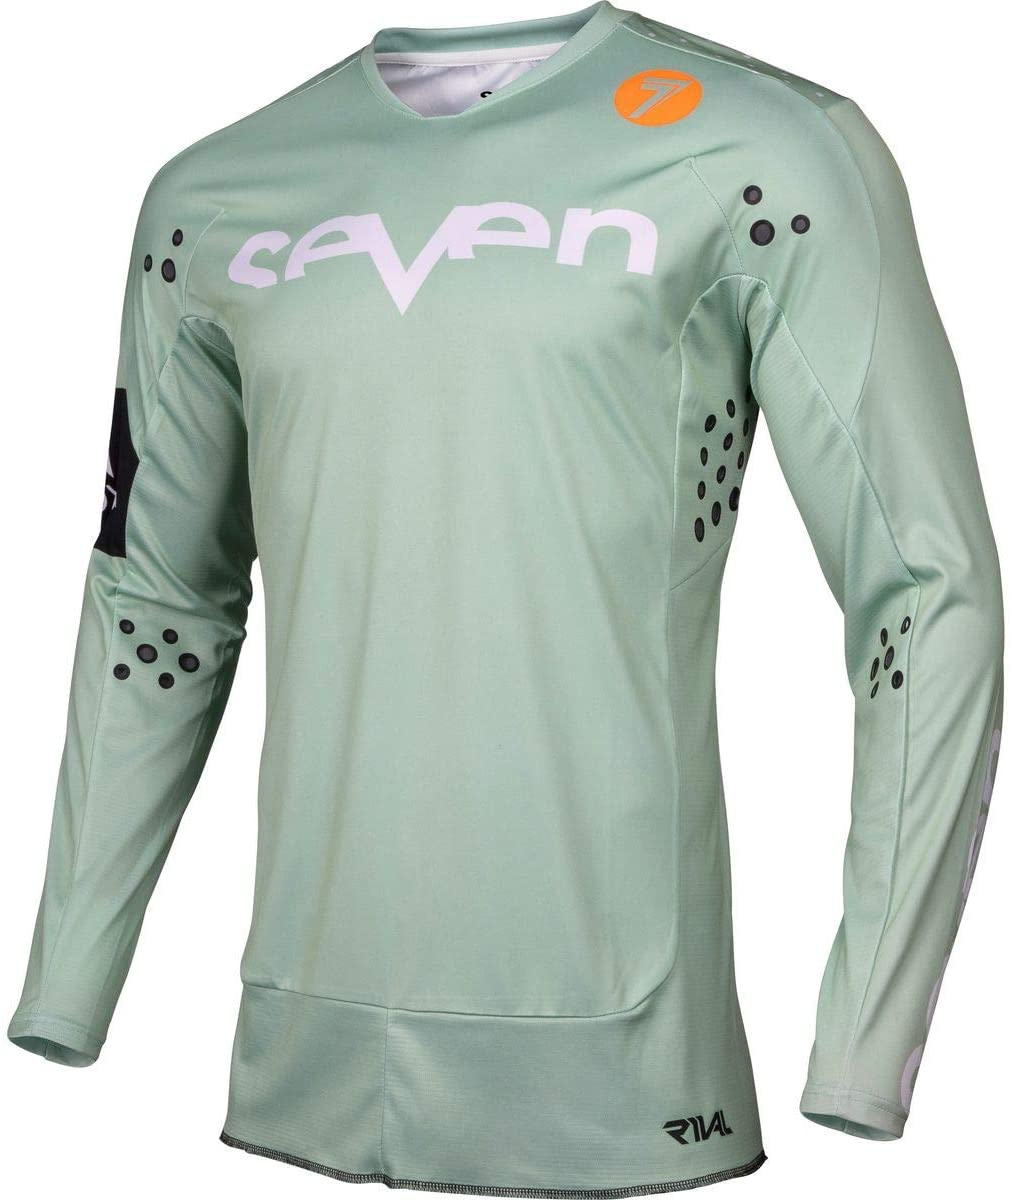 Seven Men's Rival Trooper Jersey (Paste, L)